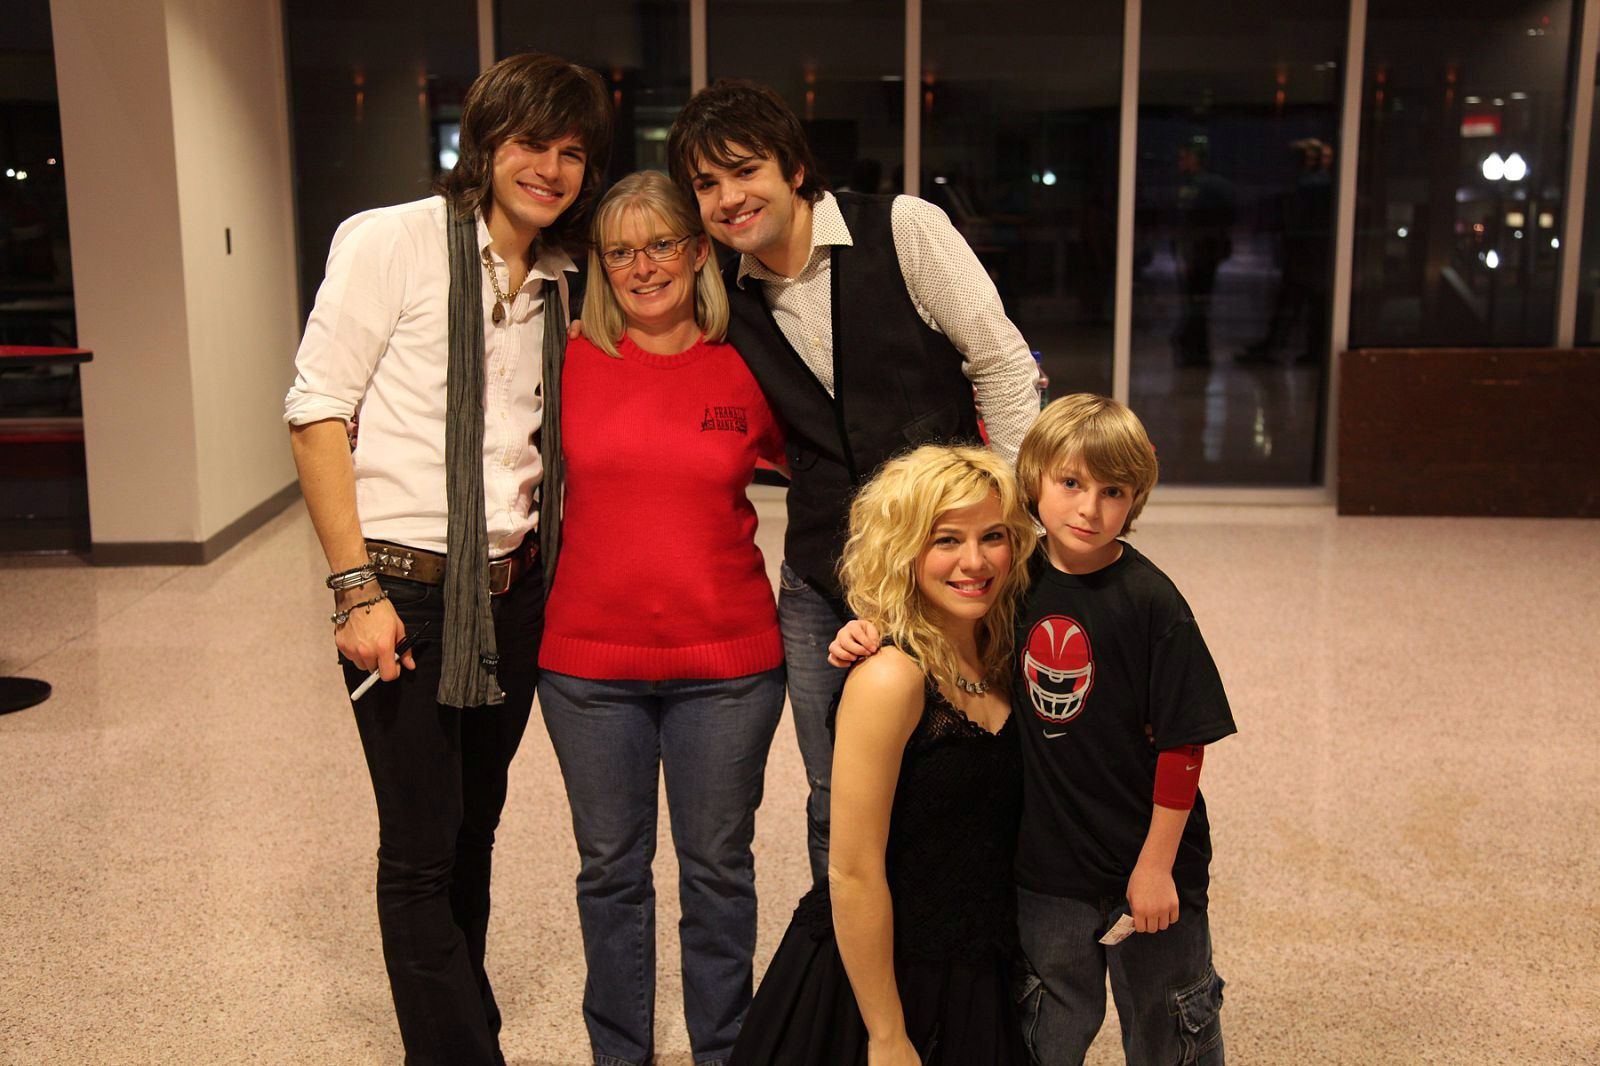 The band perry meet and greet after the concert autographed the band perry meet and greet after the concert autographed tickets and poster kristyandbryce Images